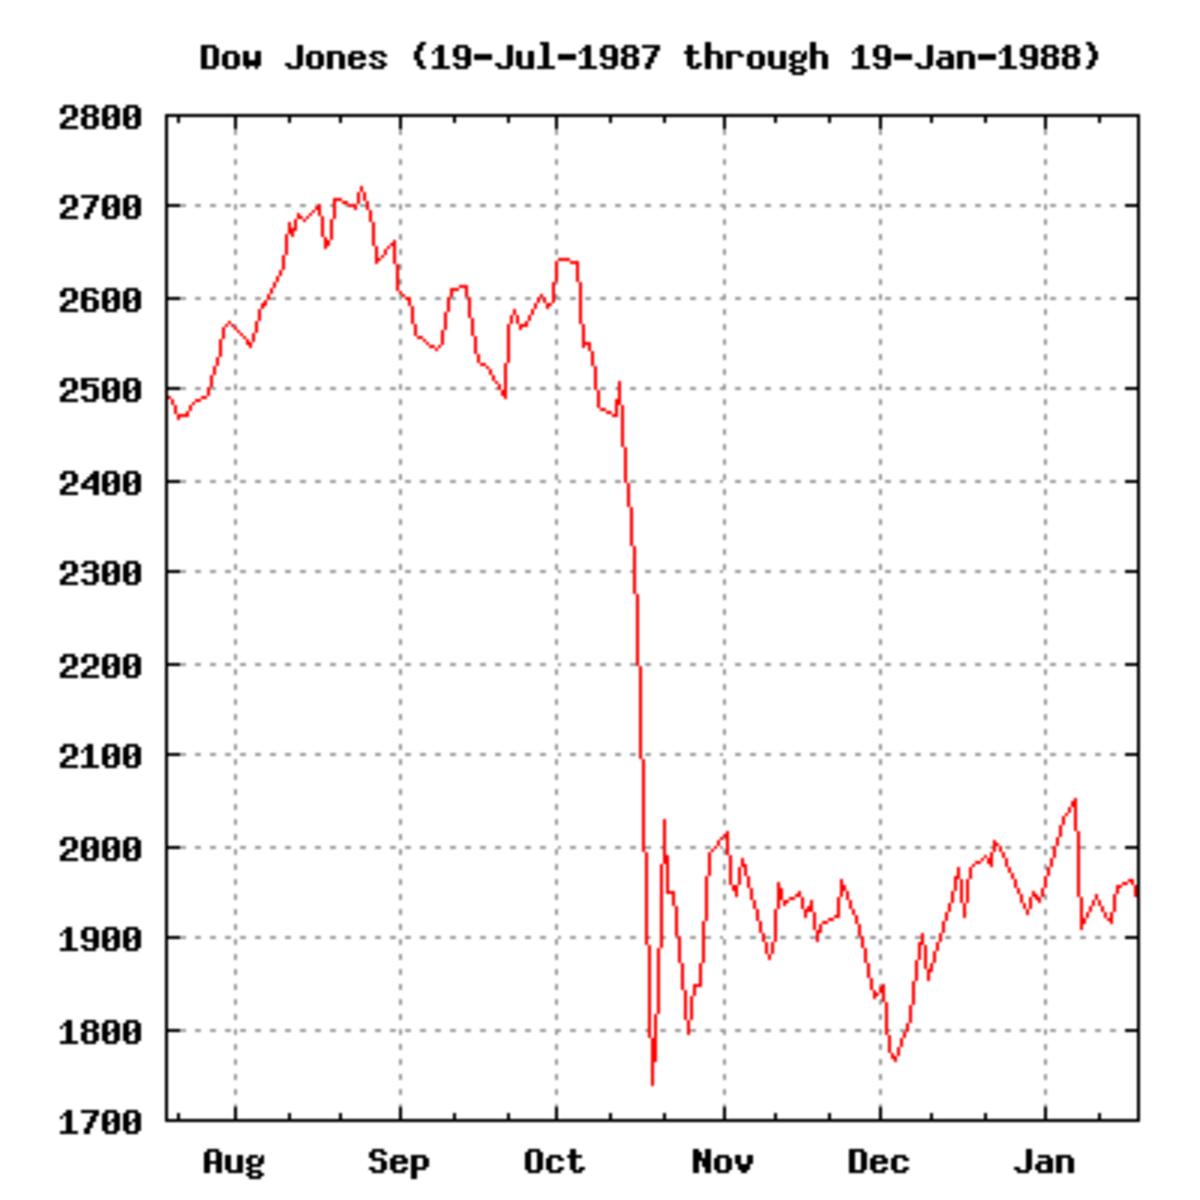 Graph of the Dow Jones Industrial Average from July 19, 1987, through the Black Monday crash, and the slow recovery in the market until January 10, 1988.